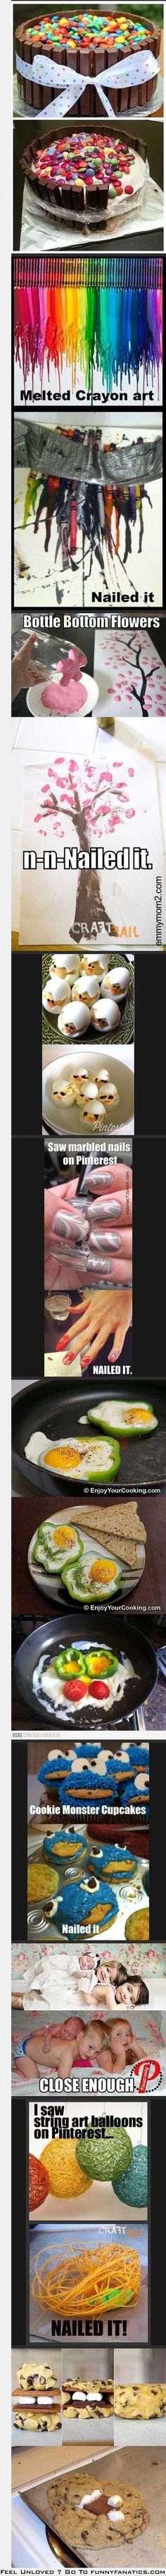 Pinterest fails - so funny, so true